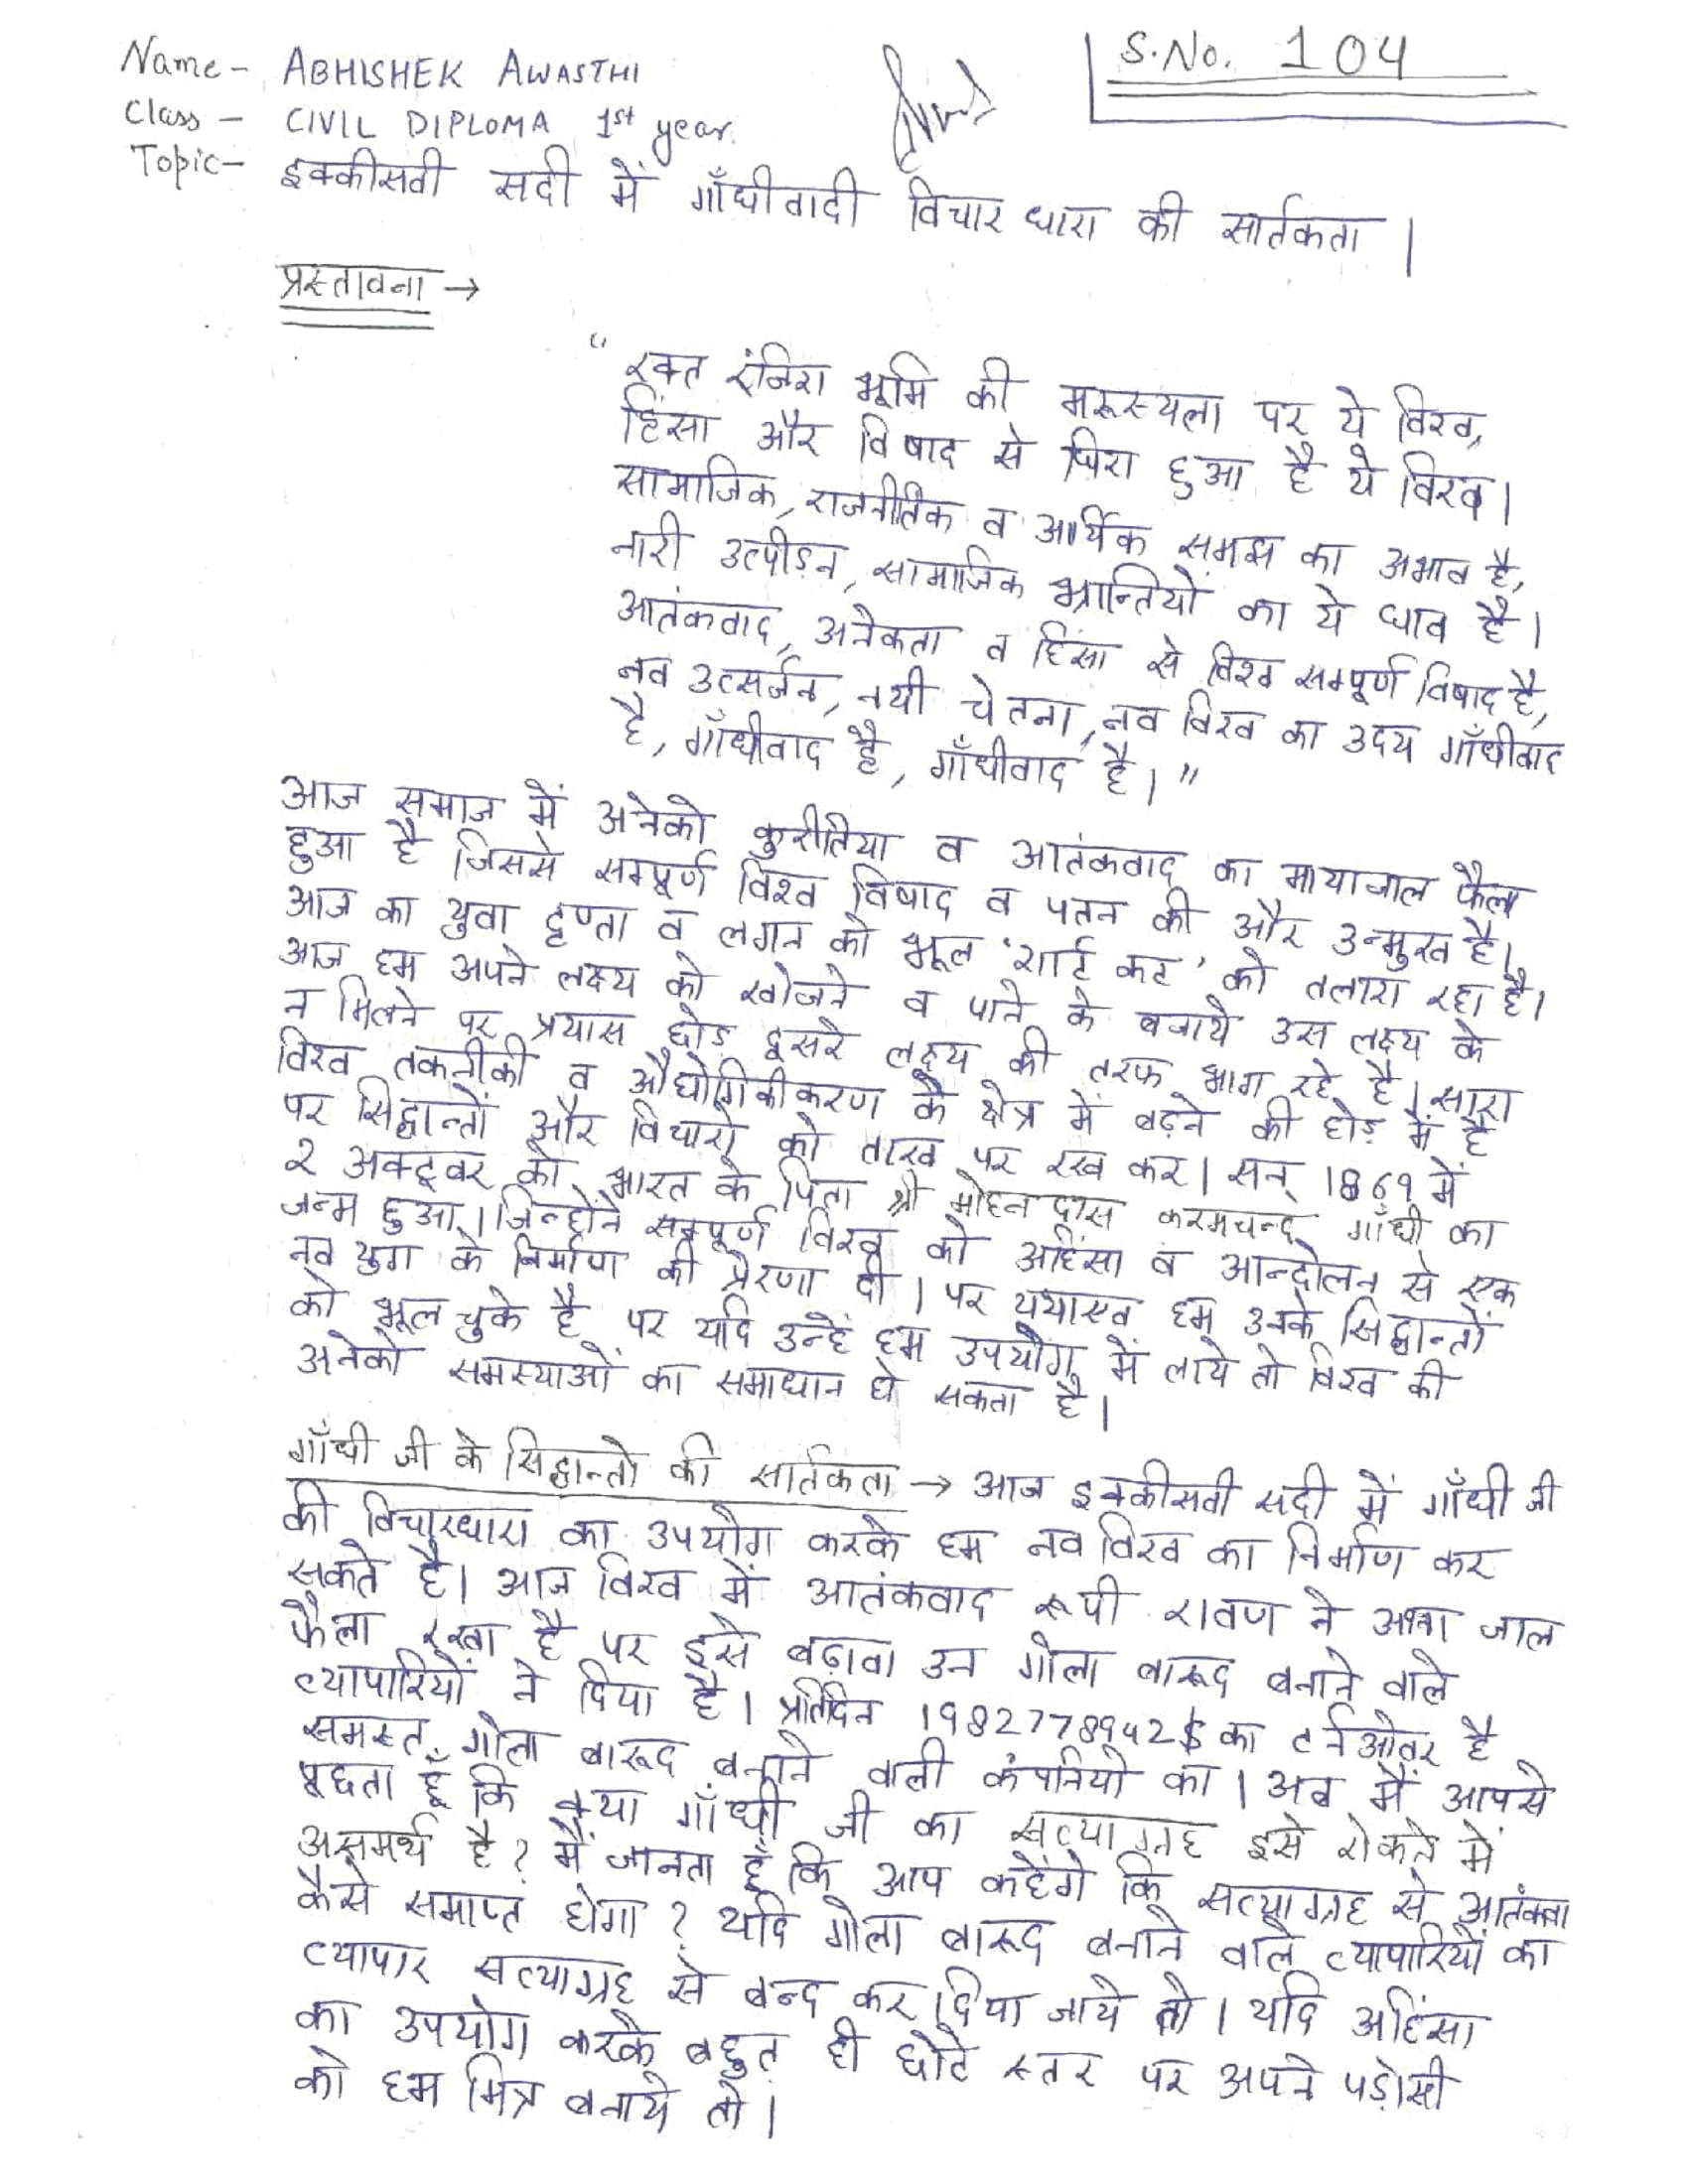 003 Schizophrenia Research Paper Essay3hindi Striking Ideas Abstract Full